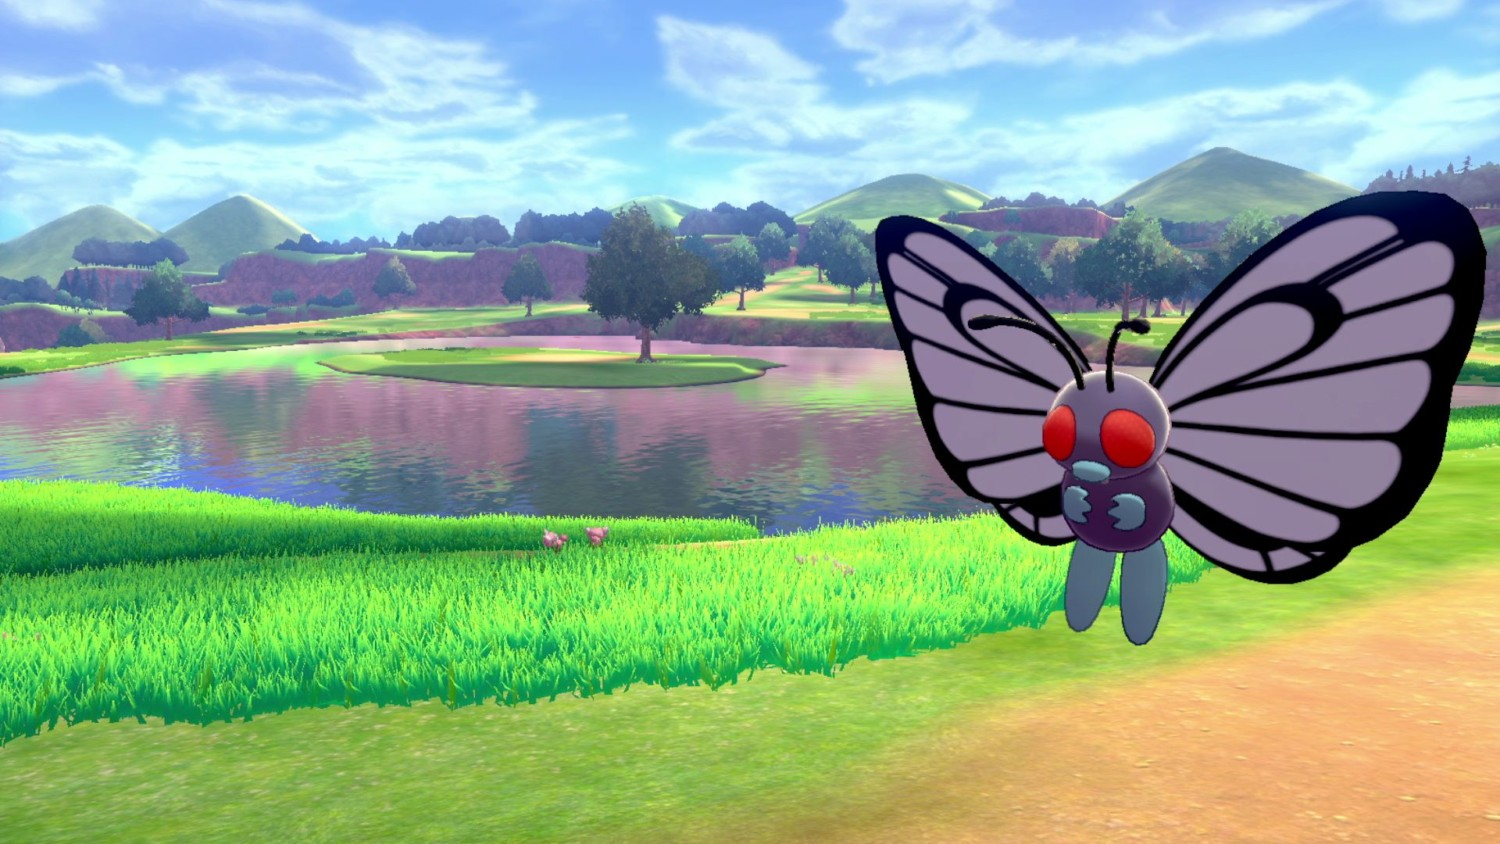 Dataminer: Pokemon Sword And Shield Built From The Same Codebase As Let's GO